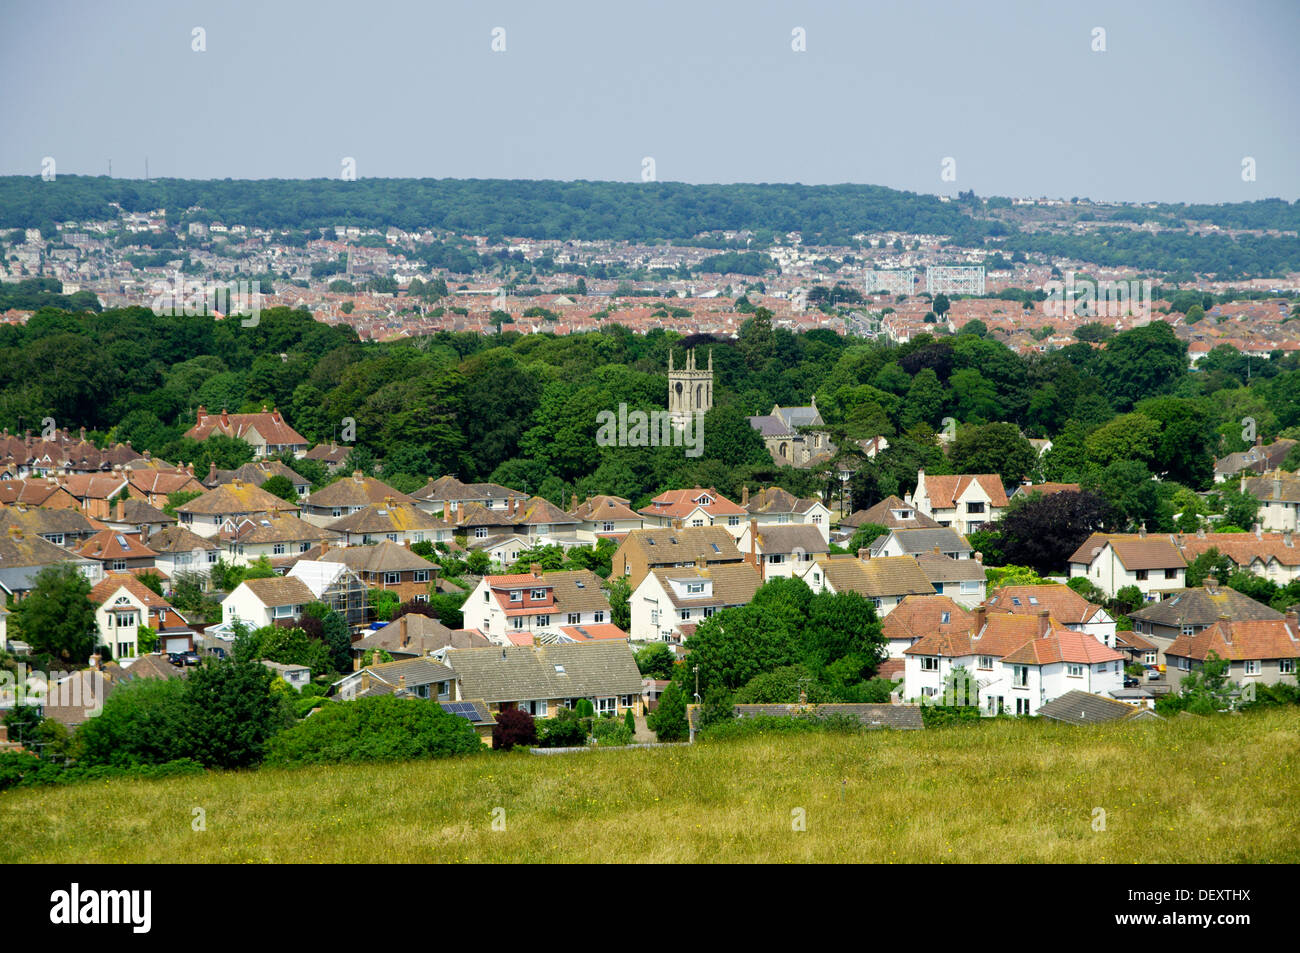 View of weston-super-mare from Uphill hill, Somerset, England. - Stock Image